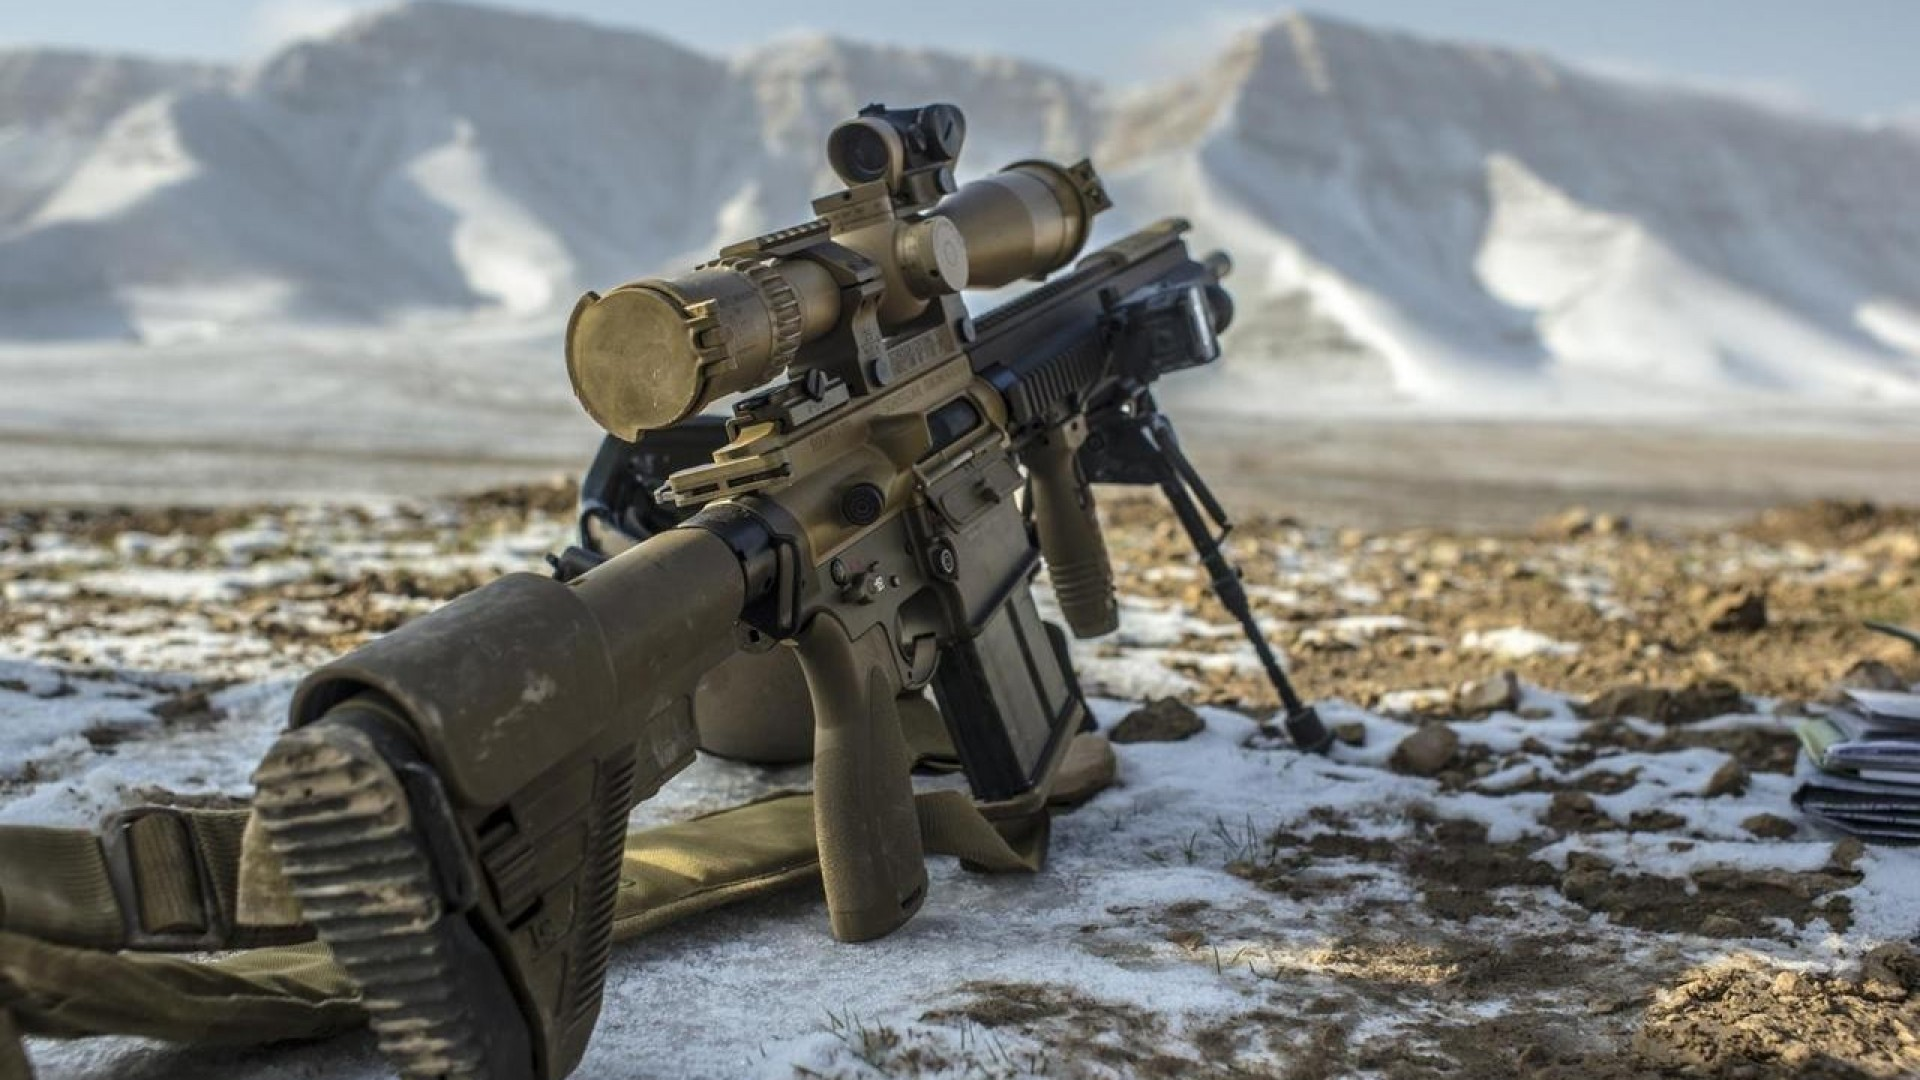 Sniper rifle wallpaper 44088 collection 17 wallpapers collection of 17 sniper rifle wallpaper 44088 voltagebd Choice Image